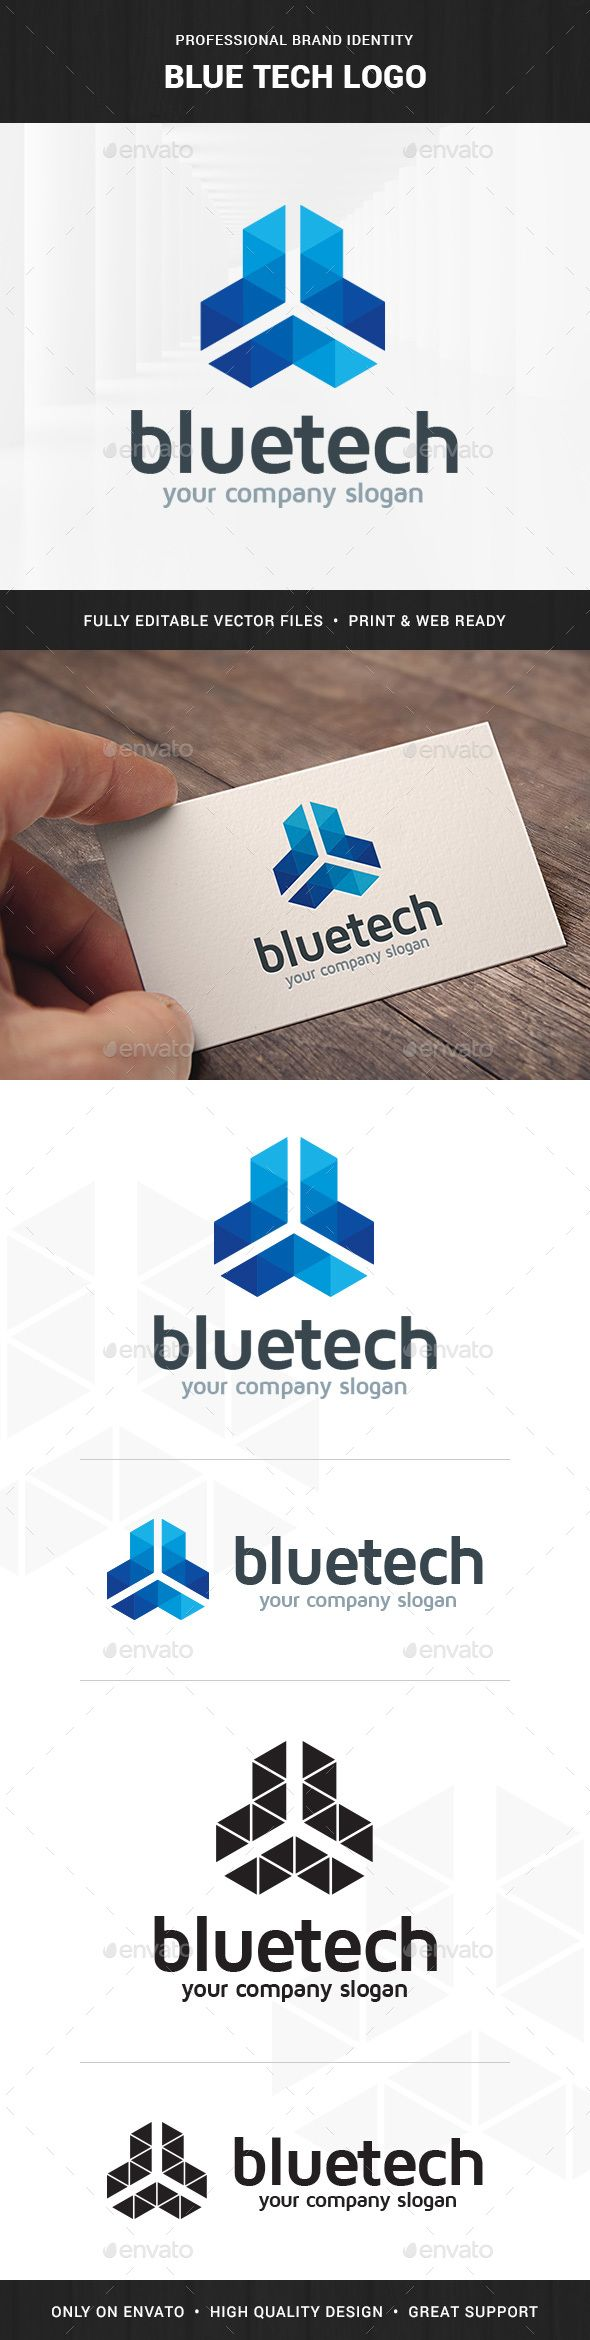 Blue Tech Logo Template — Photoshop PSD #company #simple • Available here → https://graphicriver.net/item/blue-tech-logo-template-/9198901?ref=pxcr